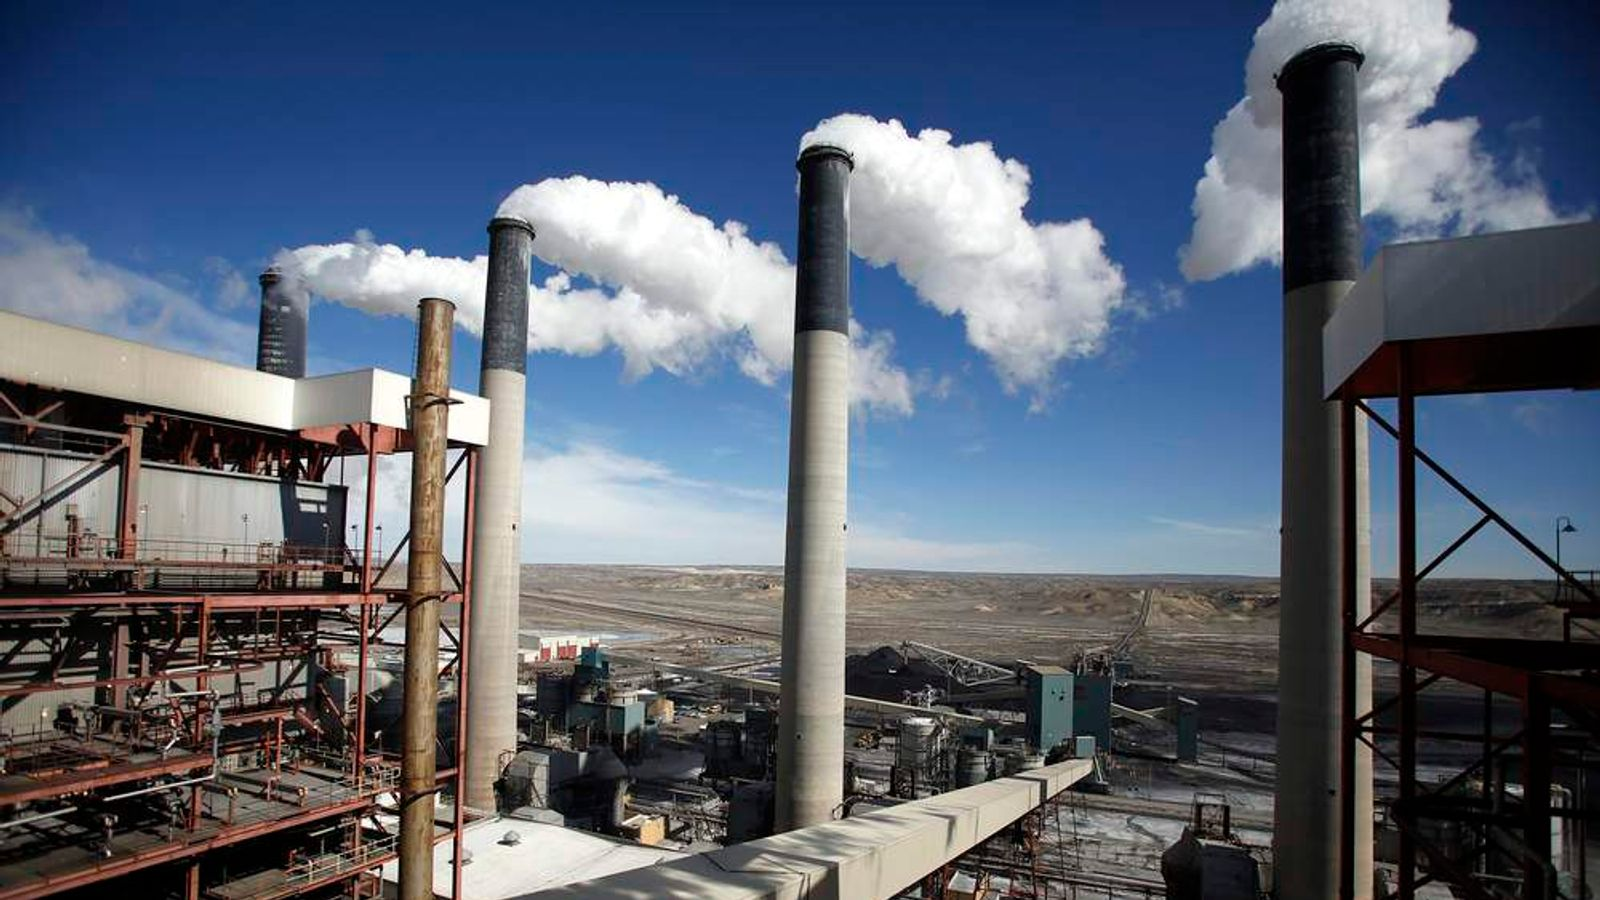 Steam rises from the stakes of the coal fired Jim Bridger Power Plant outside Point of the Rocks, Wyoming